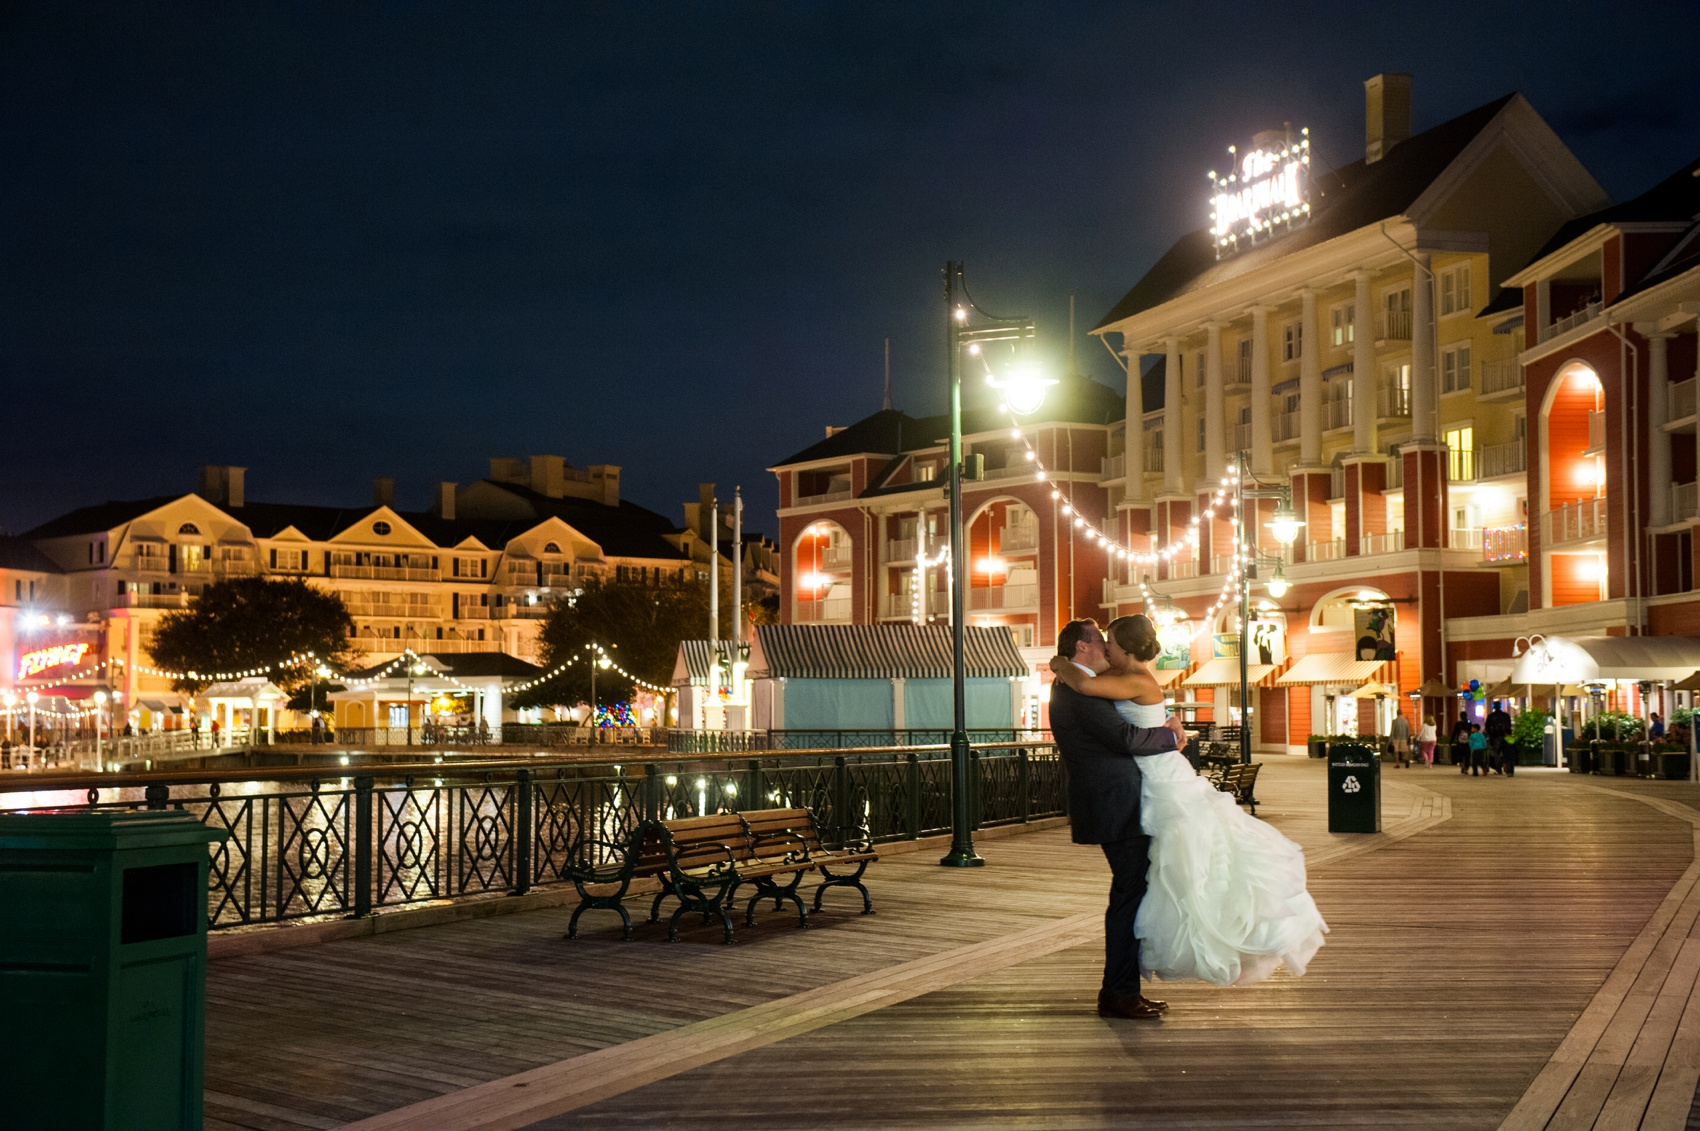 Disney World Wedding Photos By Mikkel Paige Photography At The Board Walk Reception With